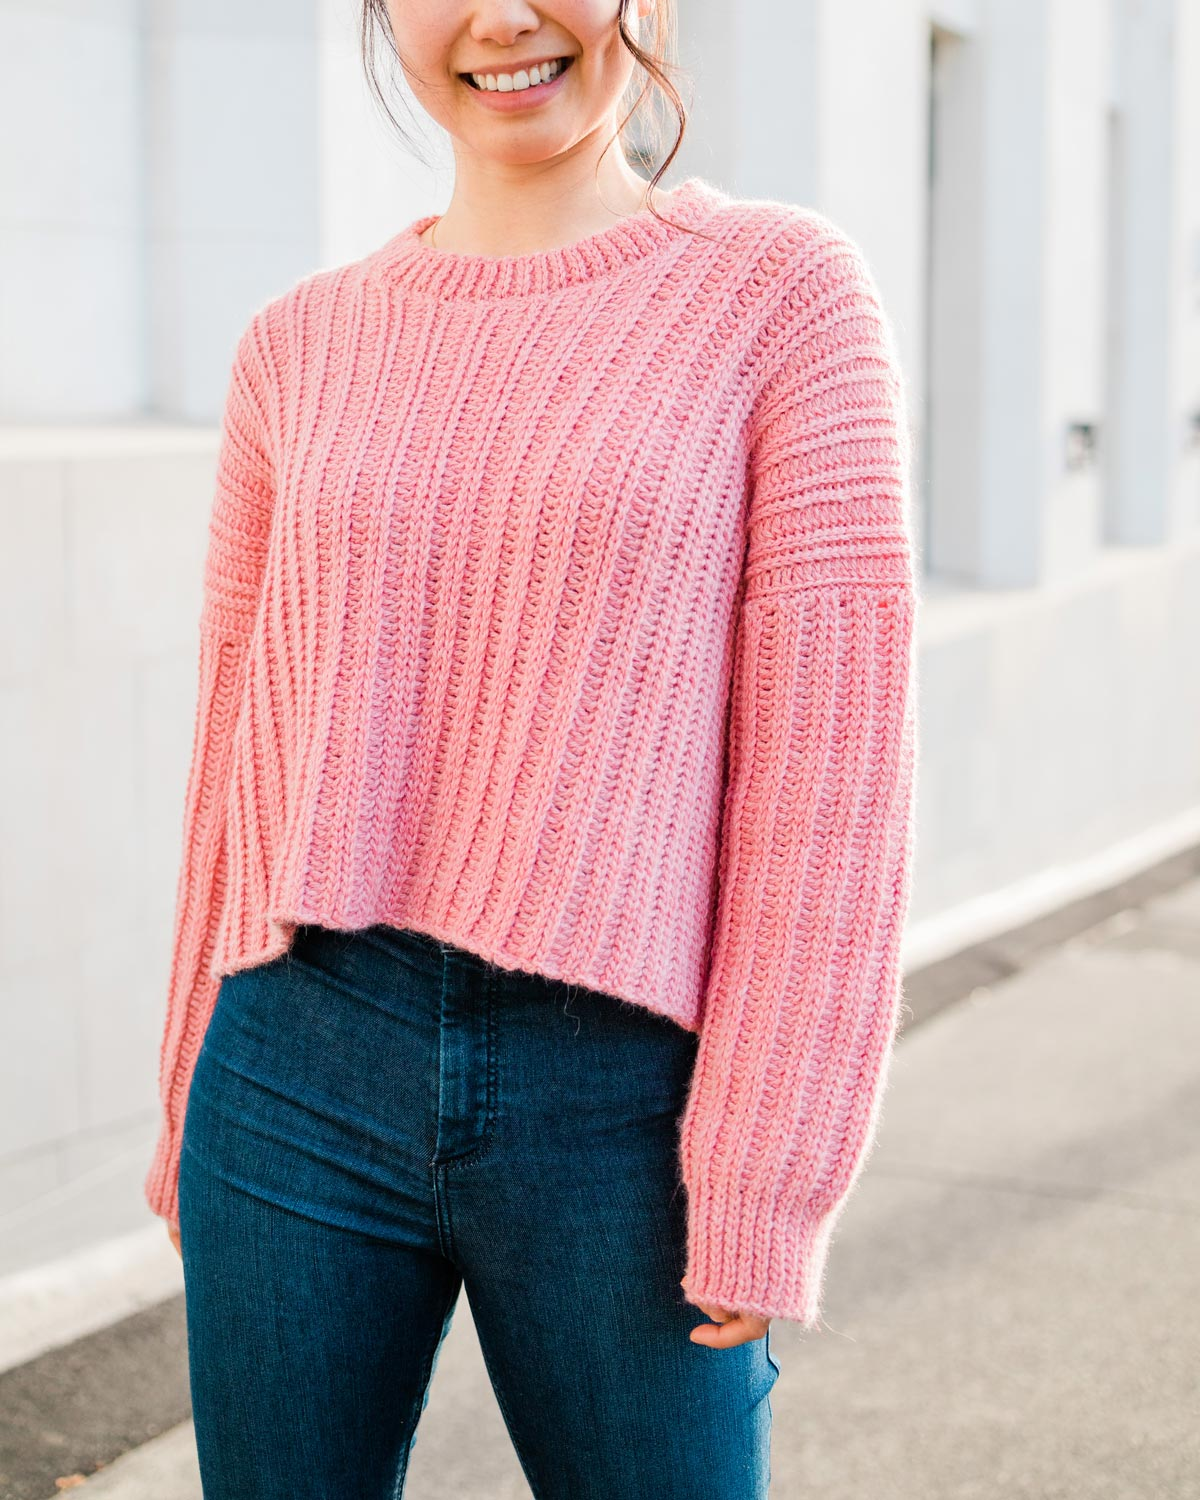 ribbed crochet crop sweater with long sleeves and blue jeans